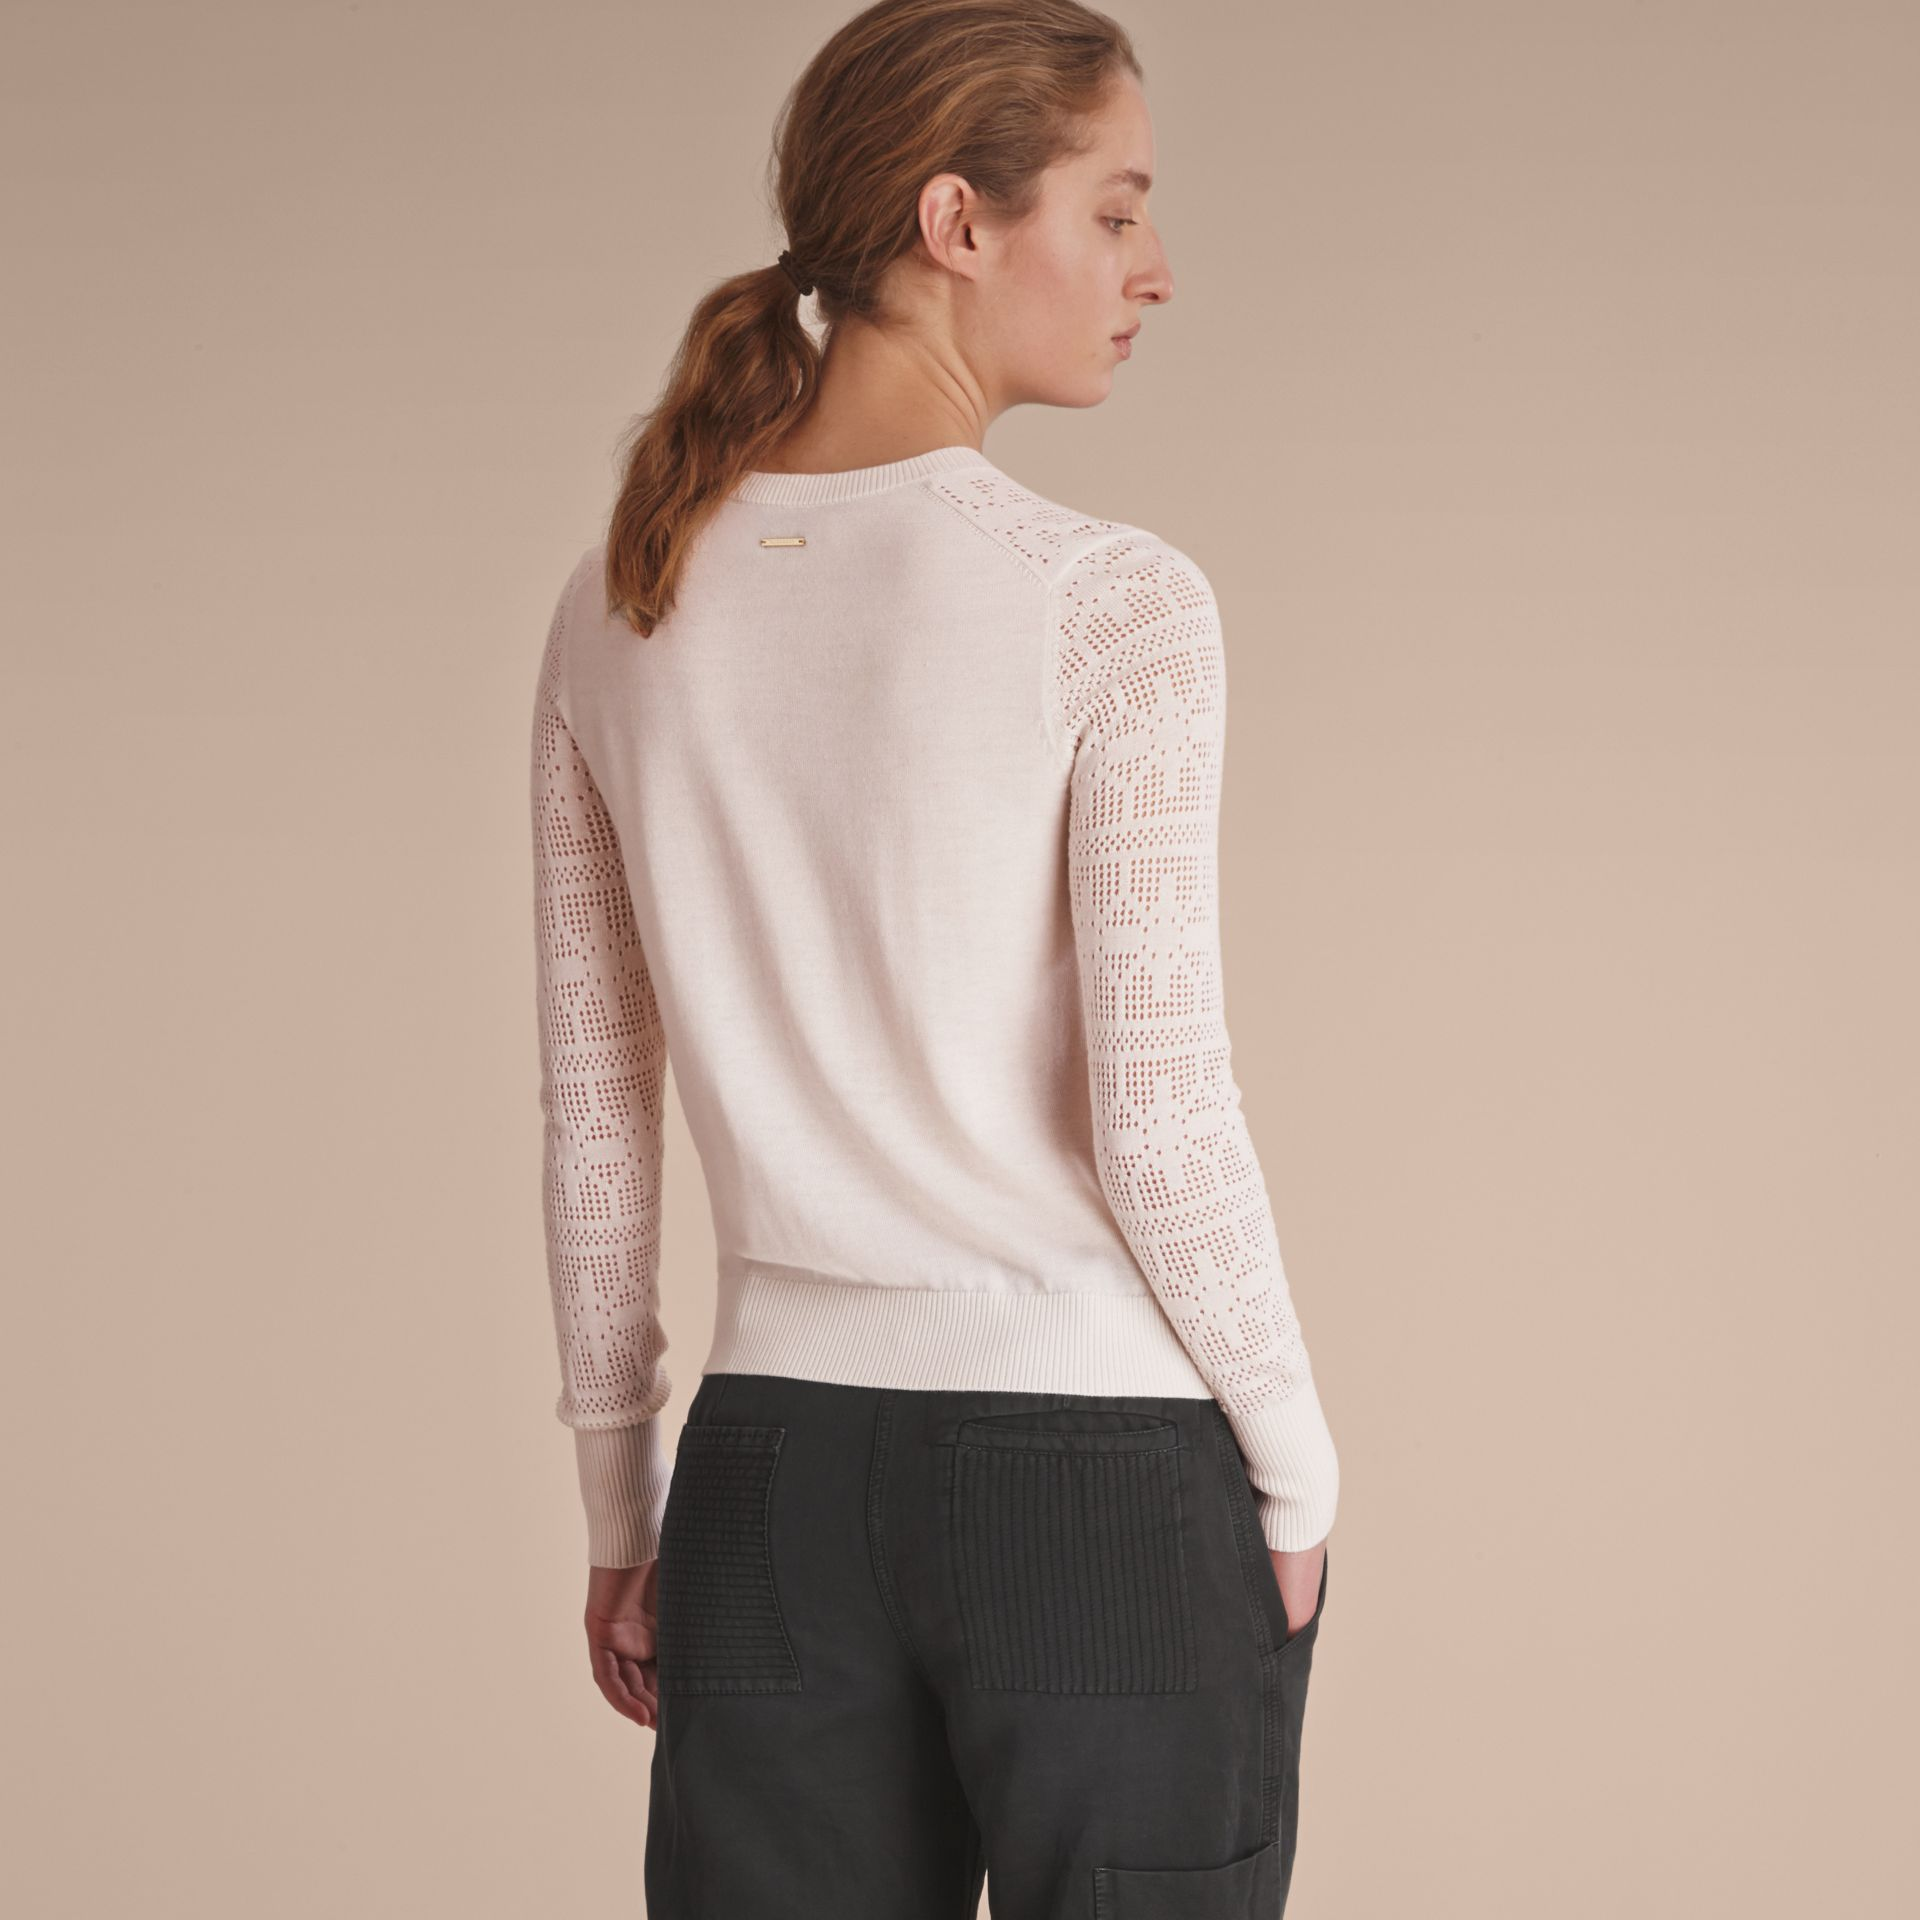 Lace Trim Knitted Wool and Cashmere Cardigan - gallery image 3